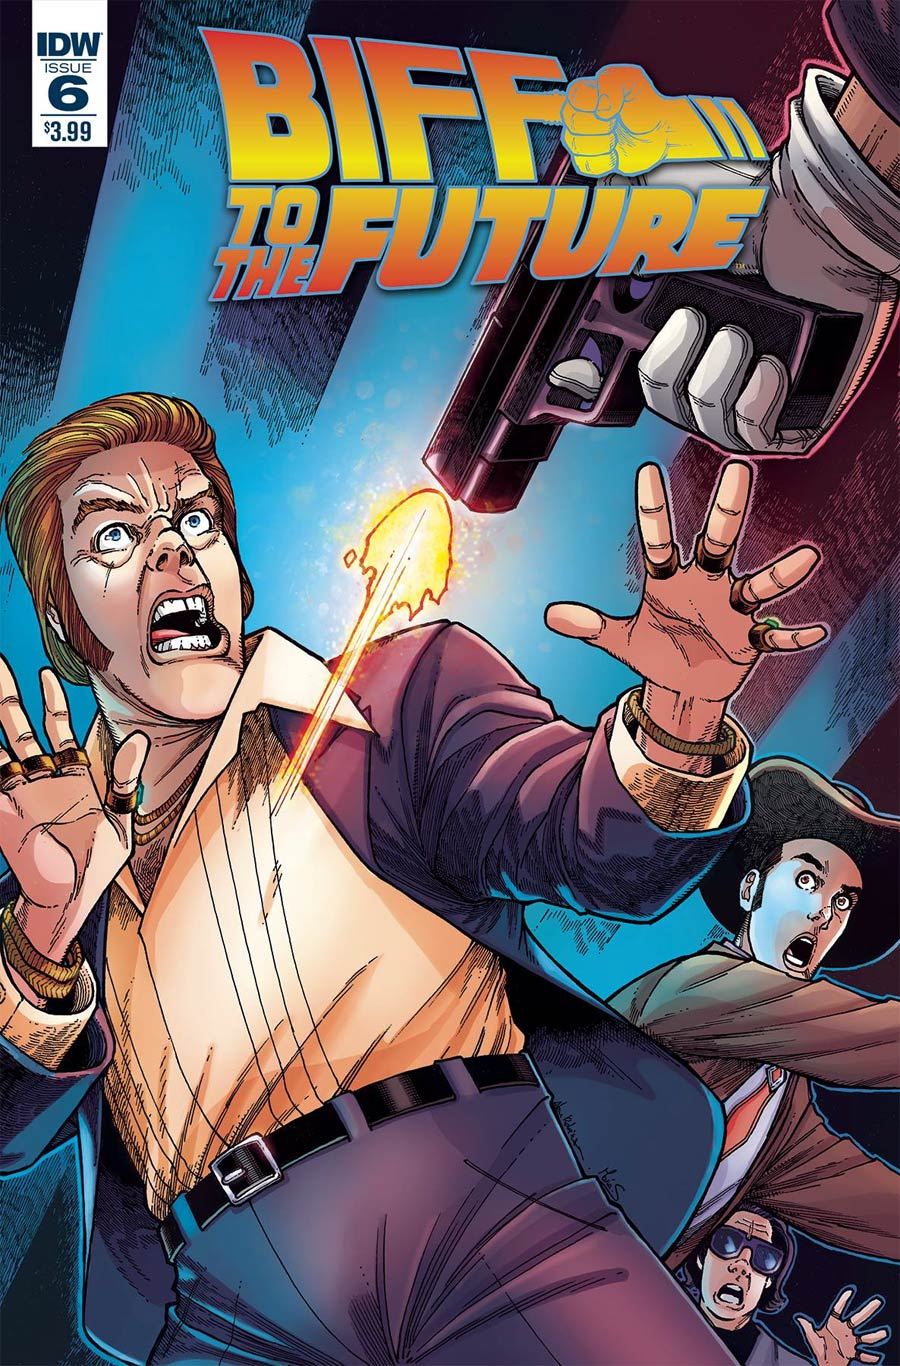 Back To The Future Biff To The Future #6 Cover A Regular Alan Robinson Cover